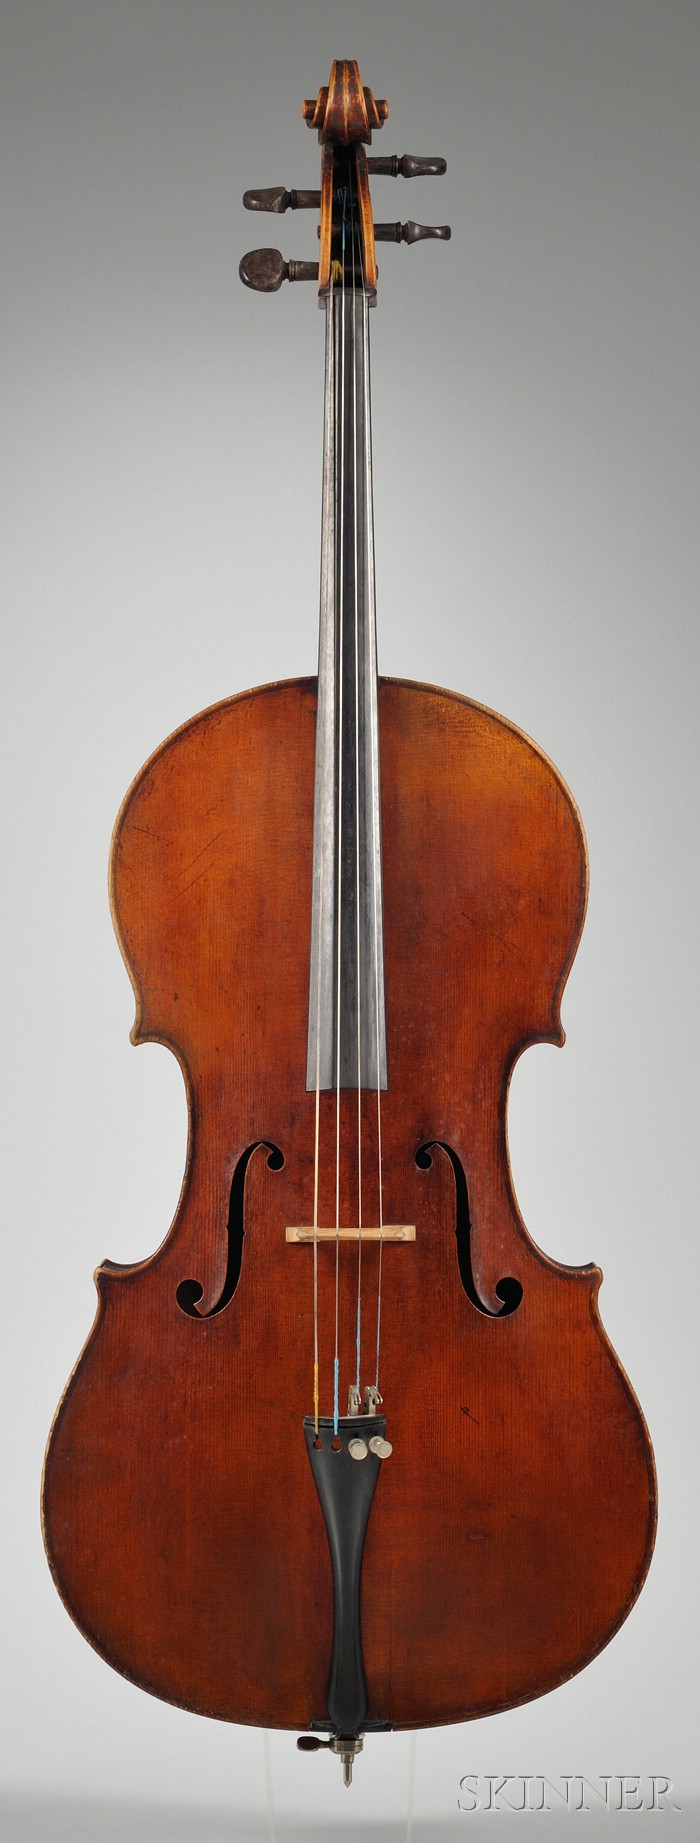 French Violoncello, c. 1840, Caussin School